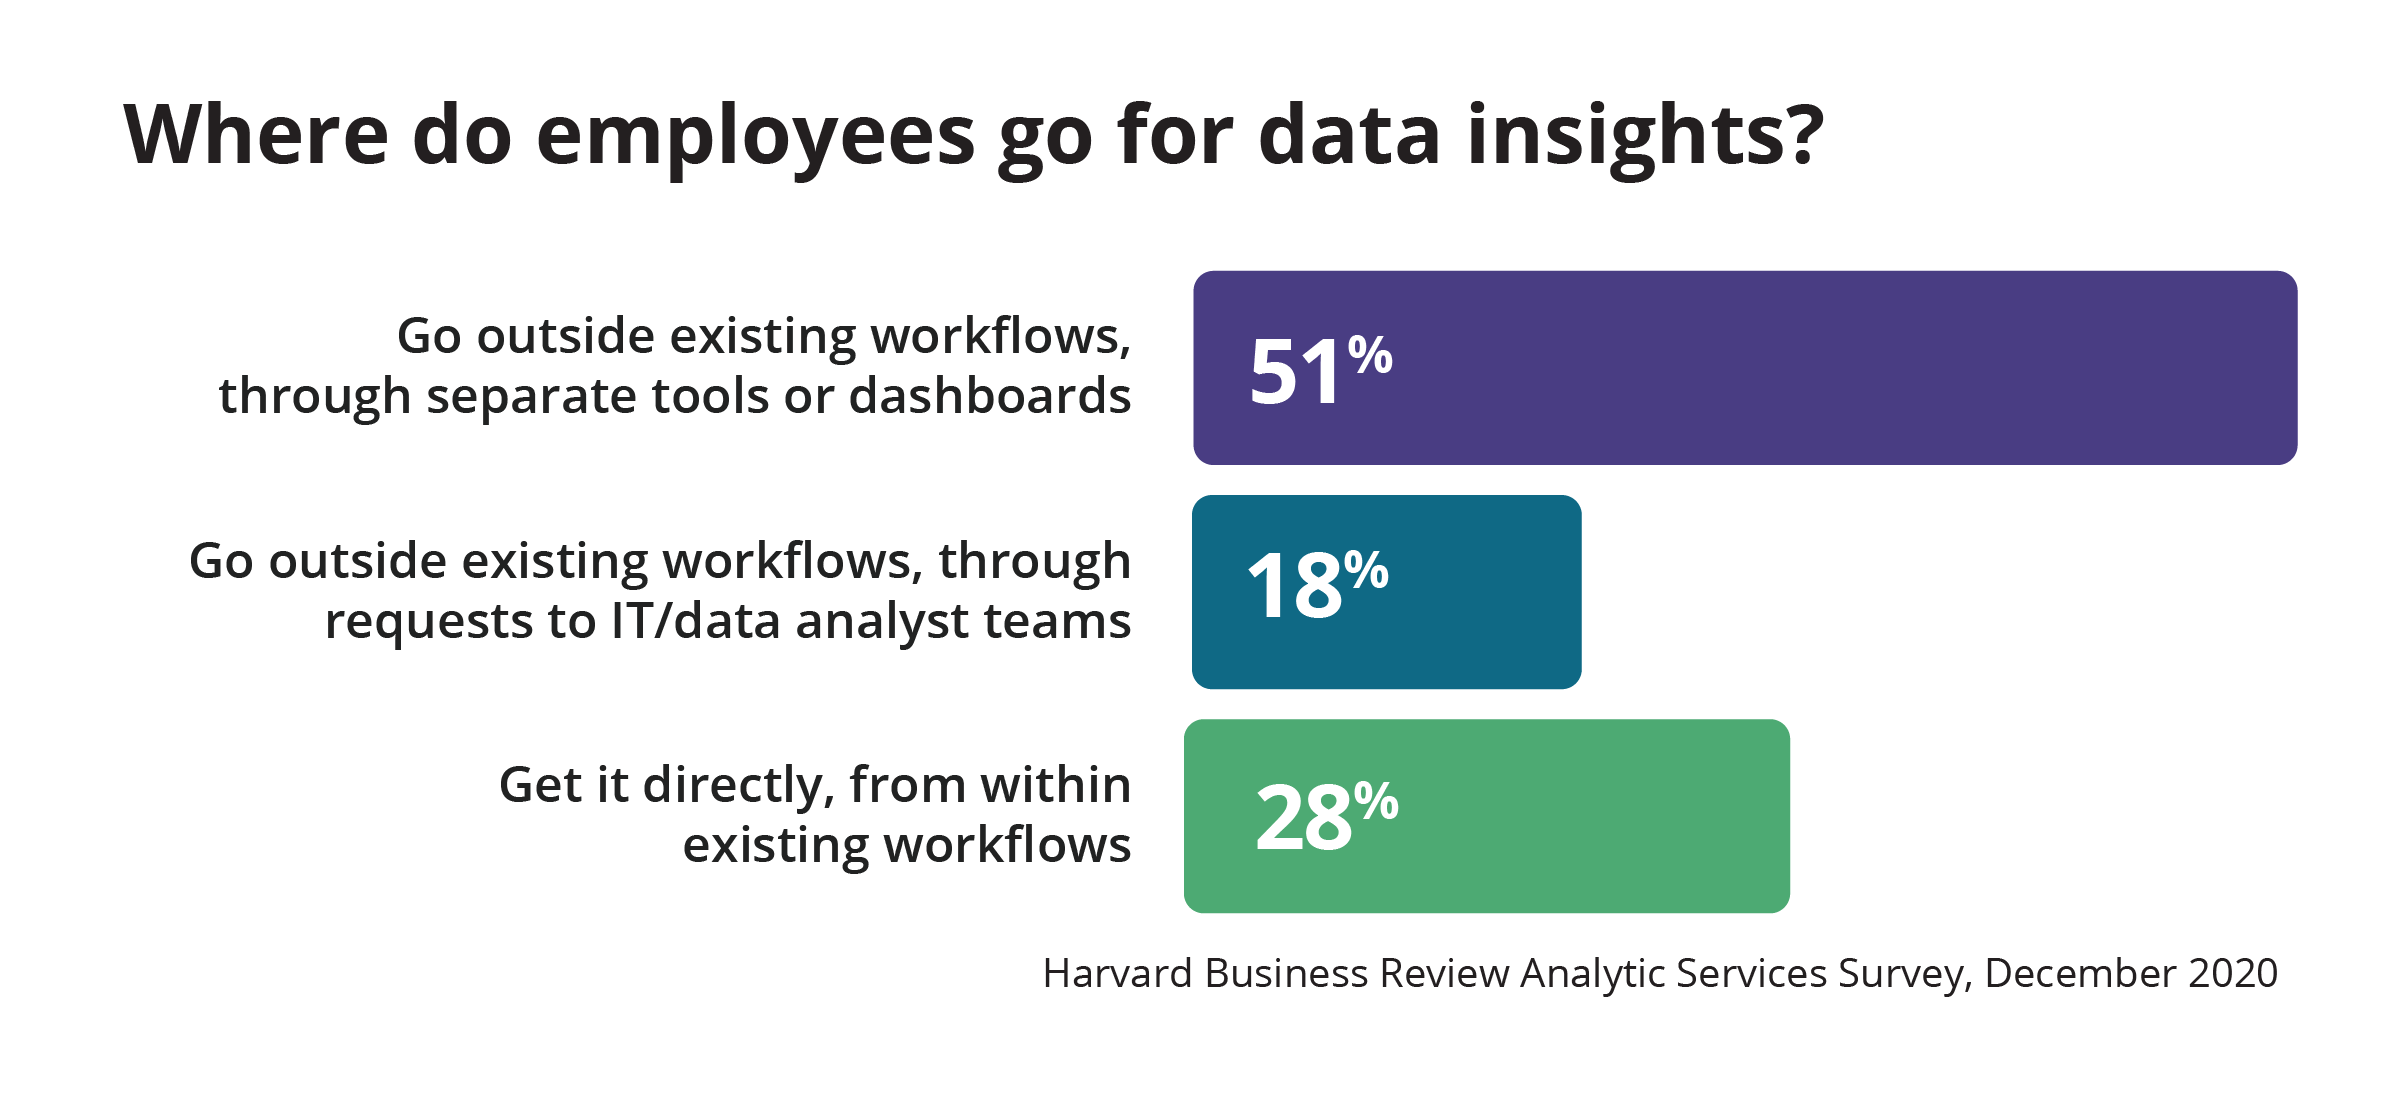 Where do employees go for data insights?